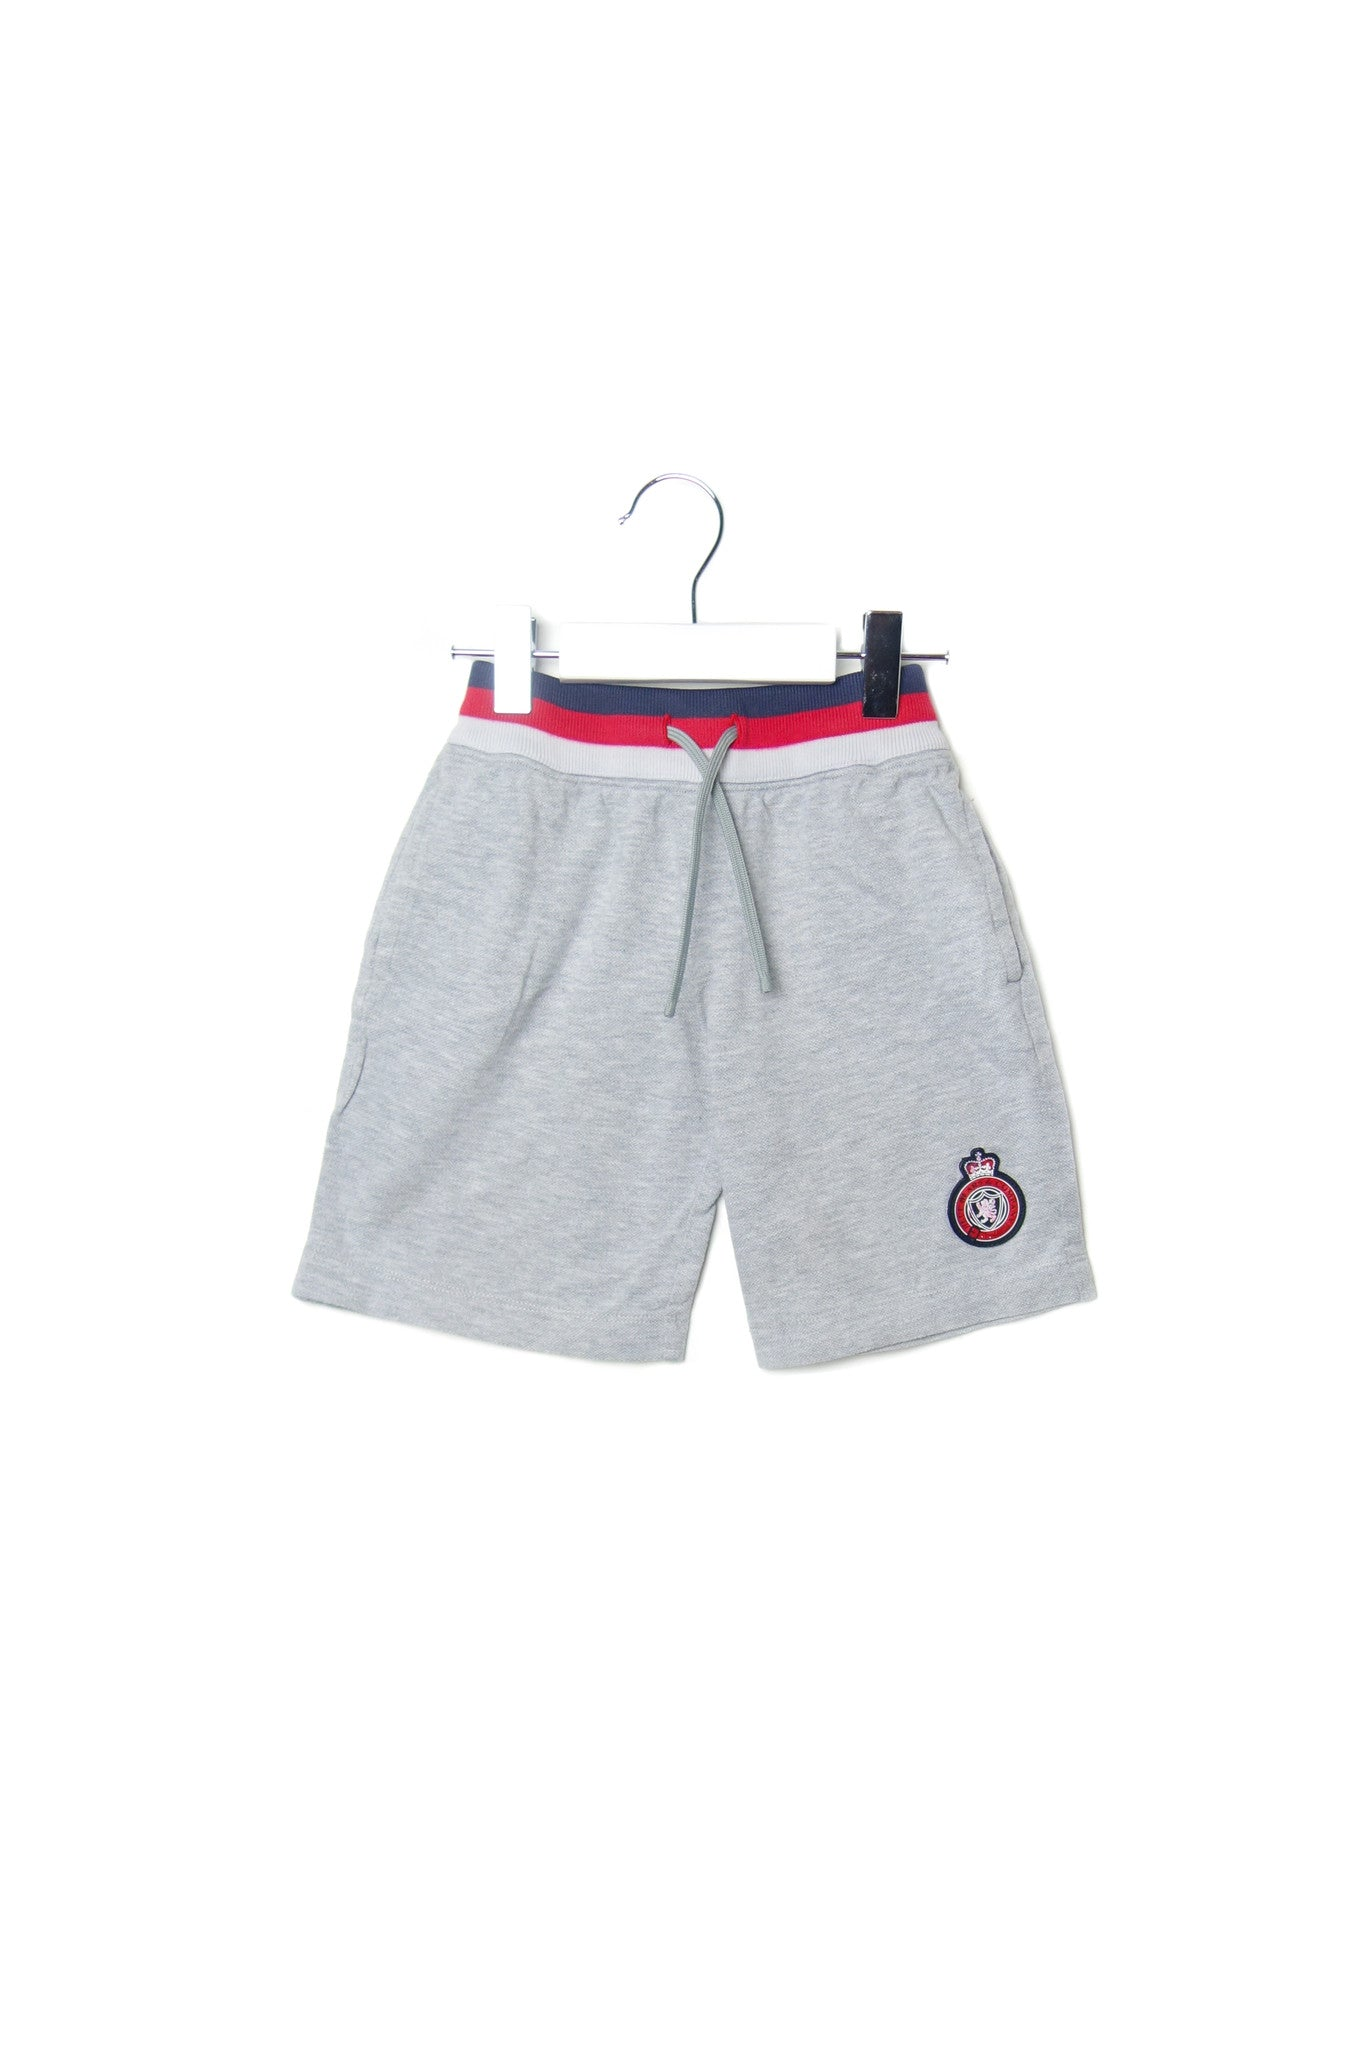 10001823 Nicholas & Bears Kids~Shorts 4T at Retykle